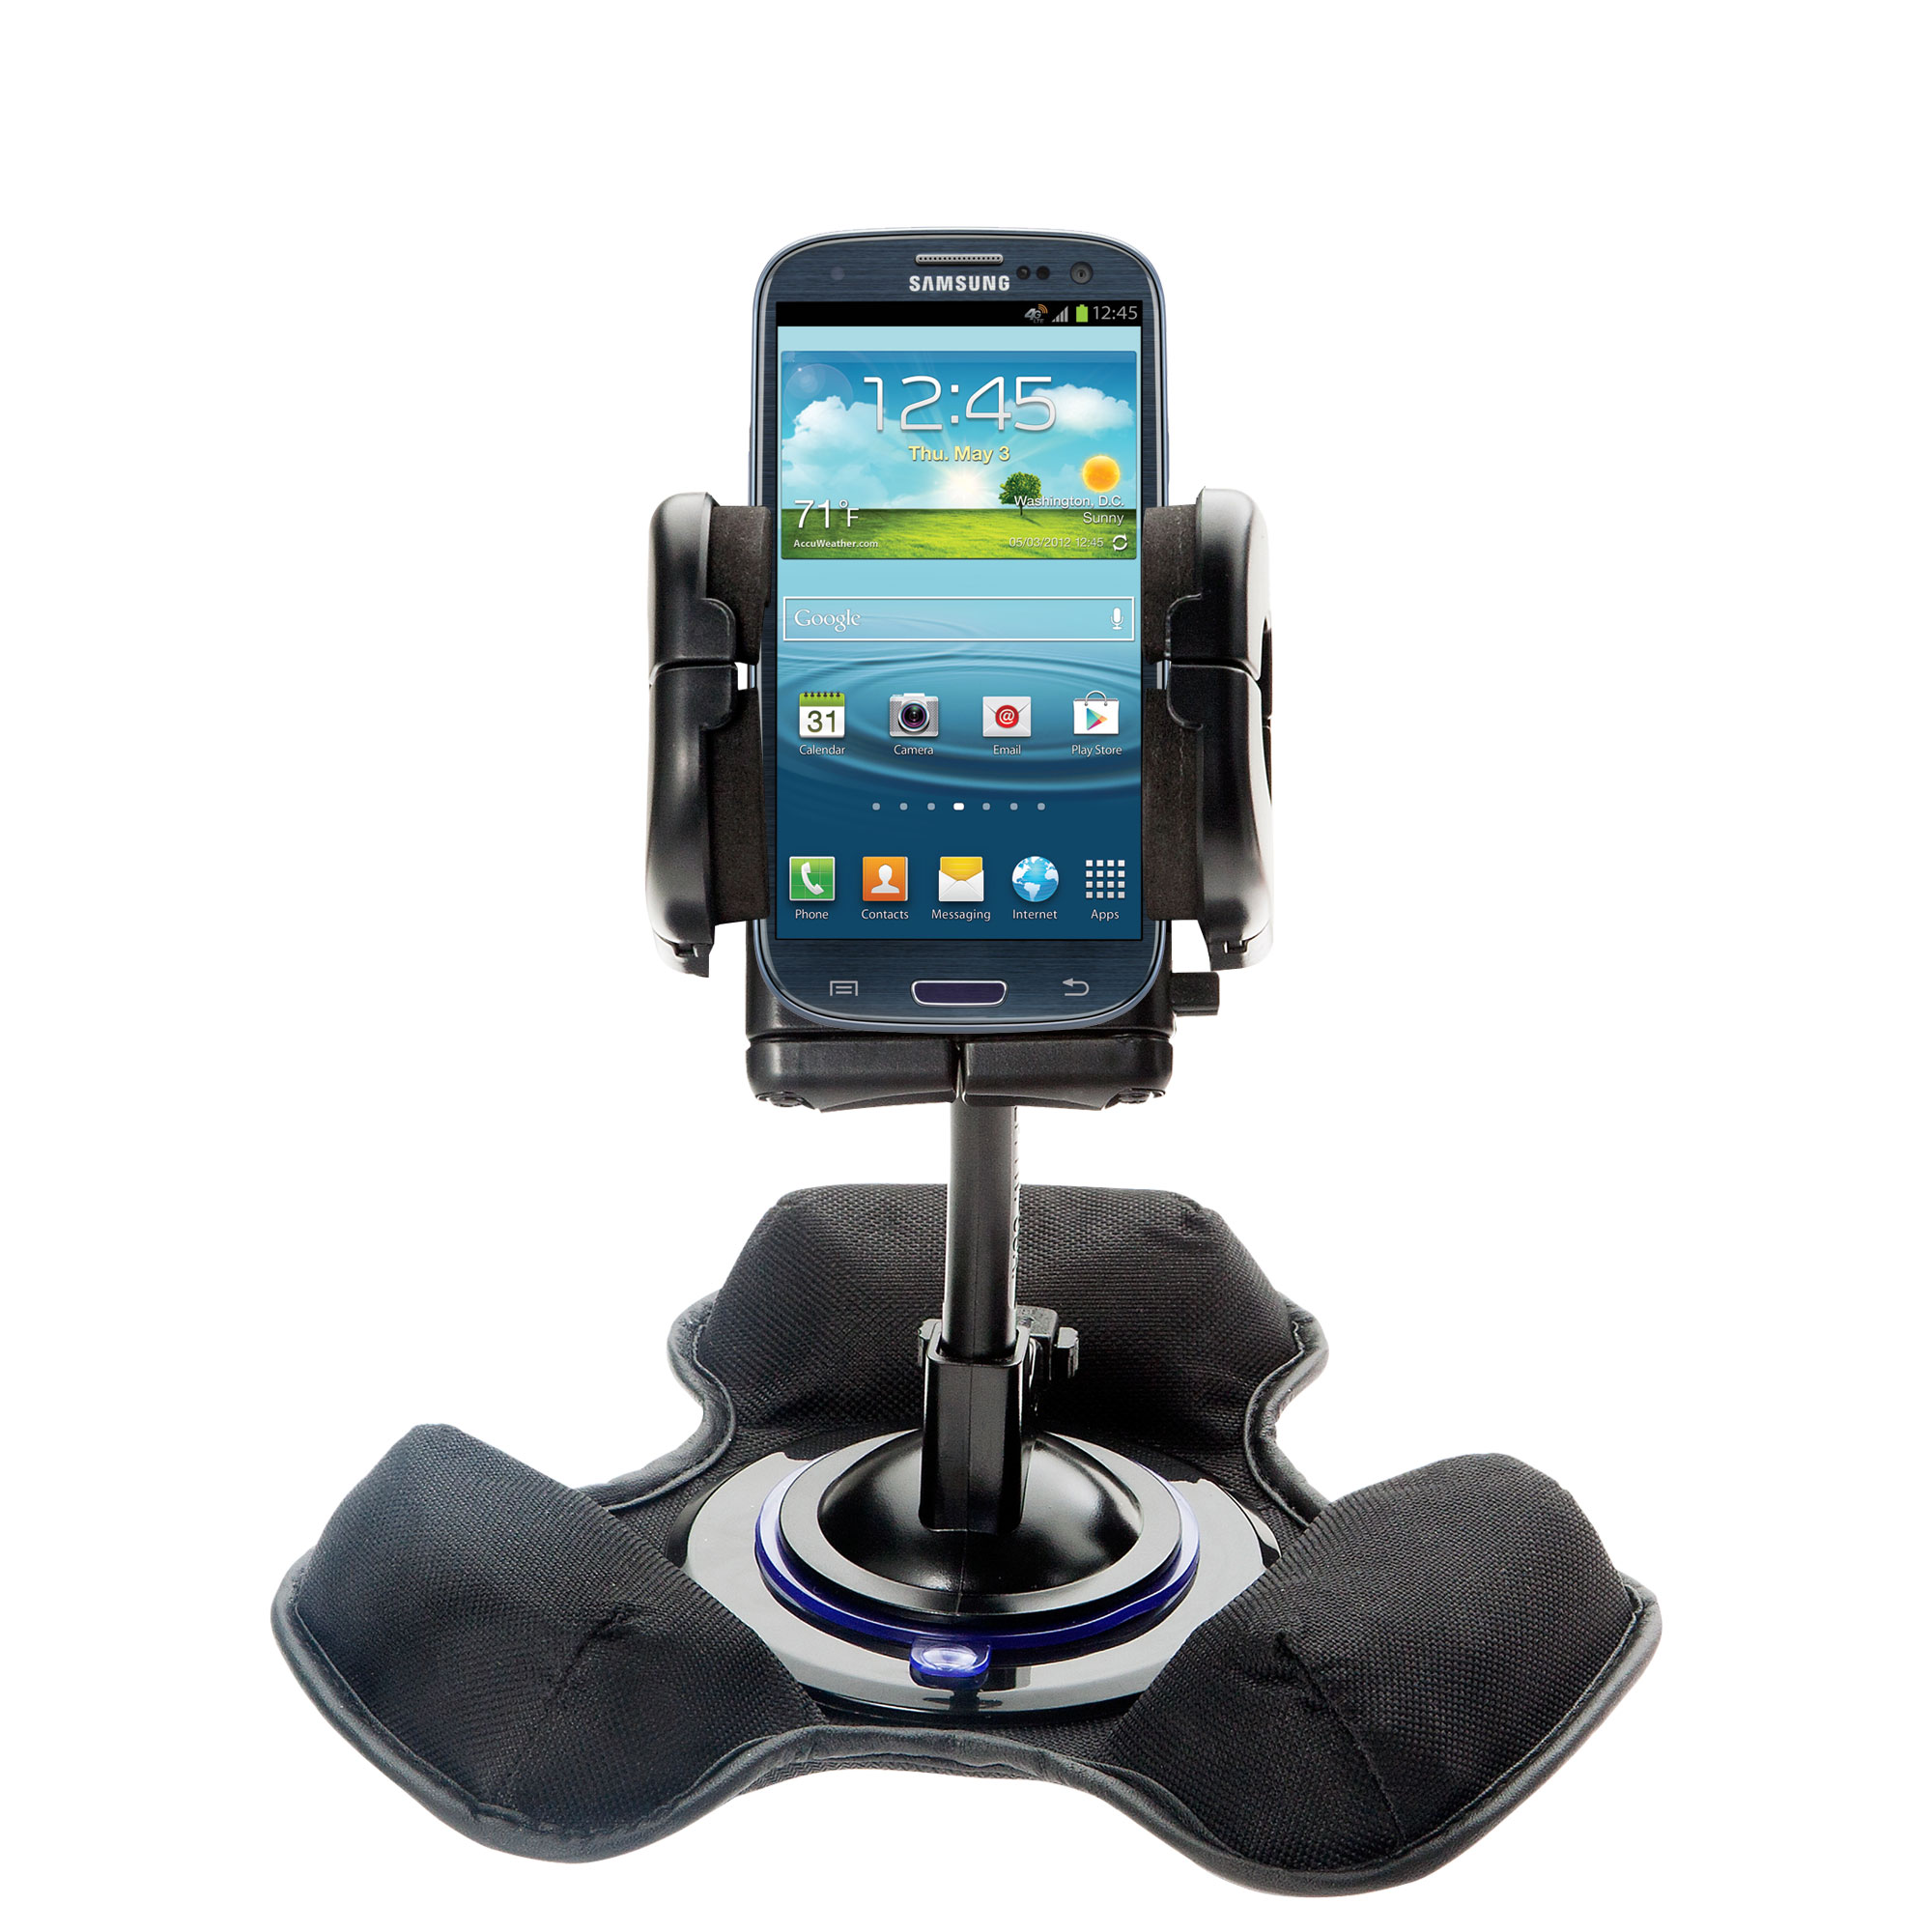 Dash and Windshield Holder compatible with the Samsung Galaxy S III